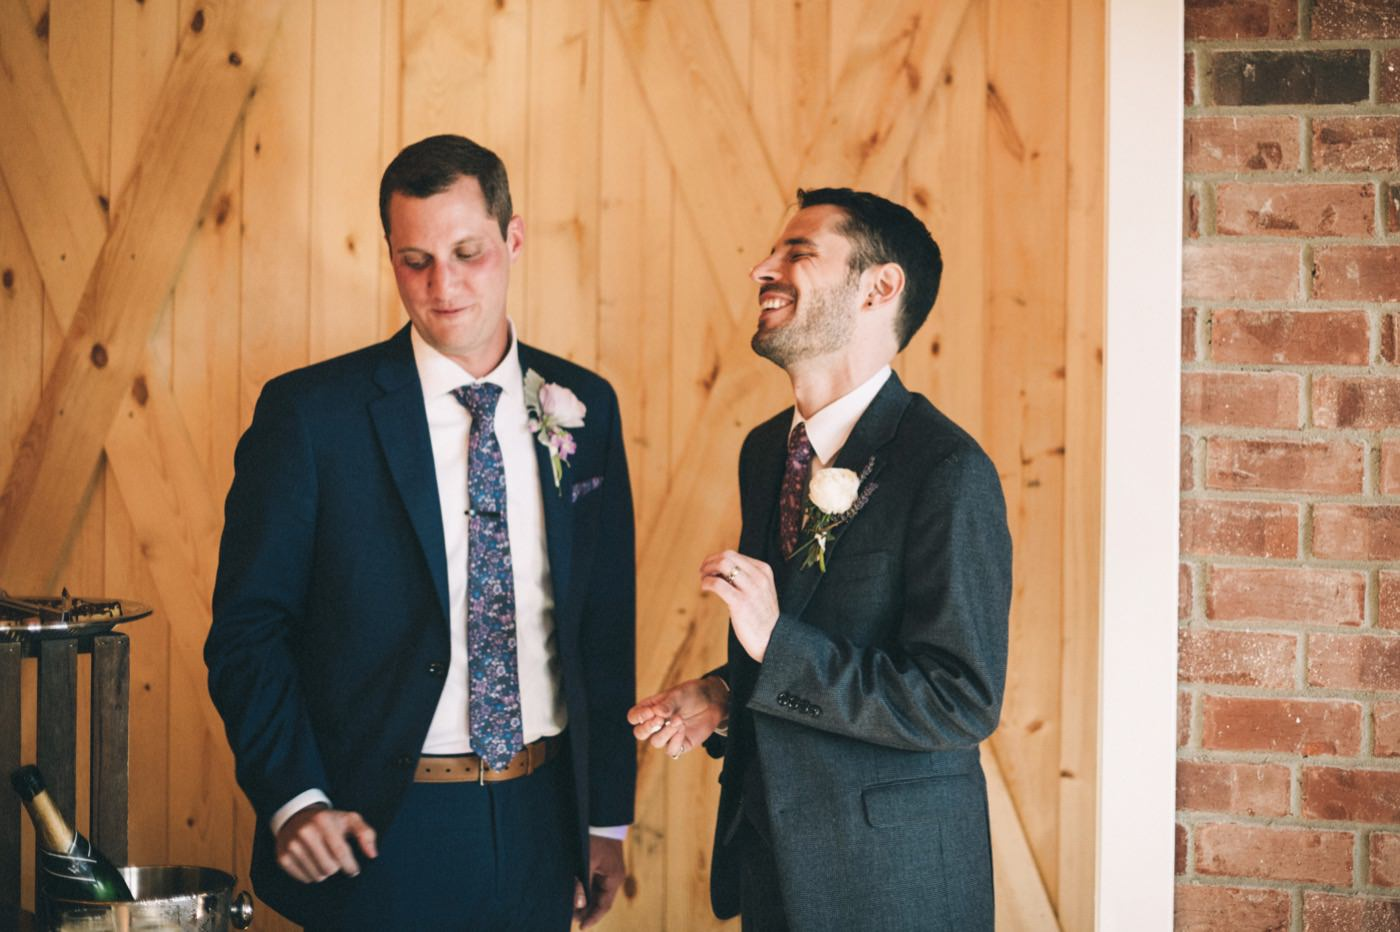 Will-Nate-Louisville-LGBTQ-Pride-Month-Kentucky-Wedding-By-Sarah-Katherine-Davis-Photograpy0051.JPG